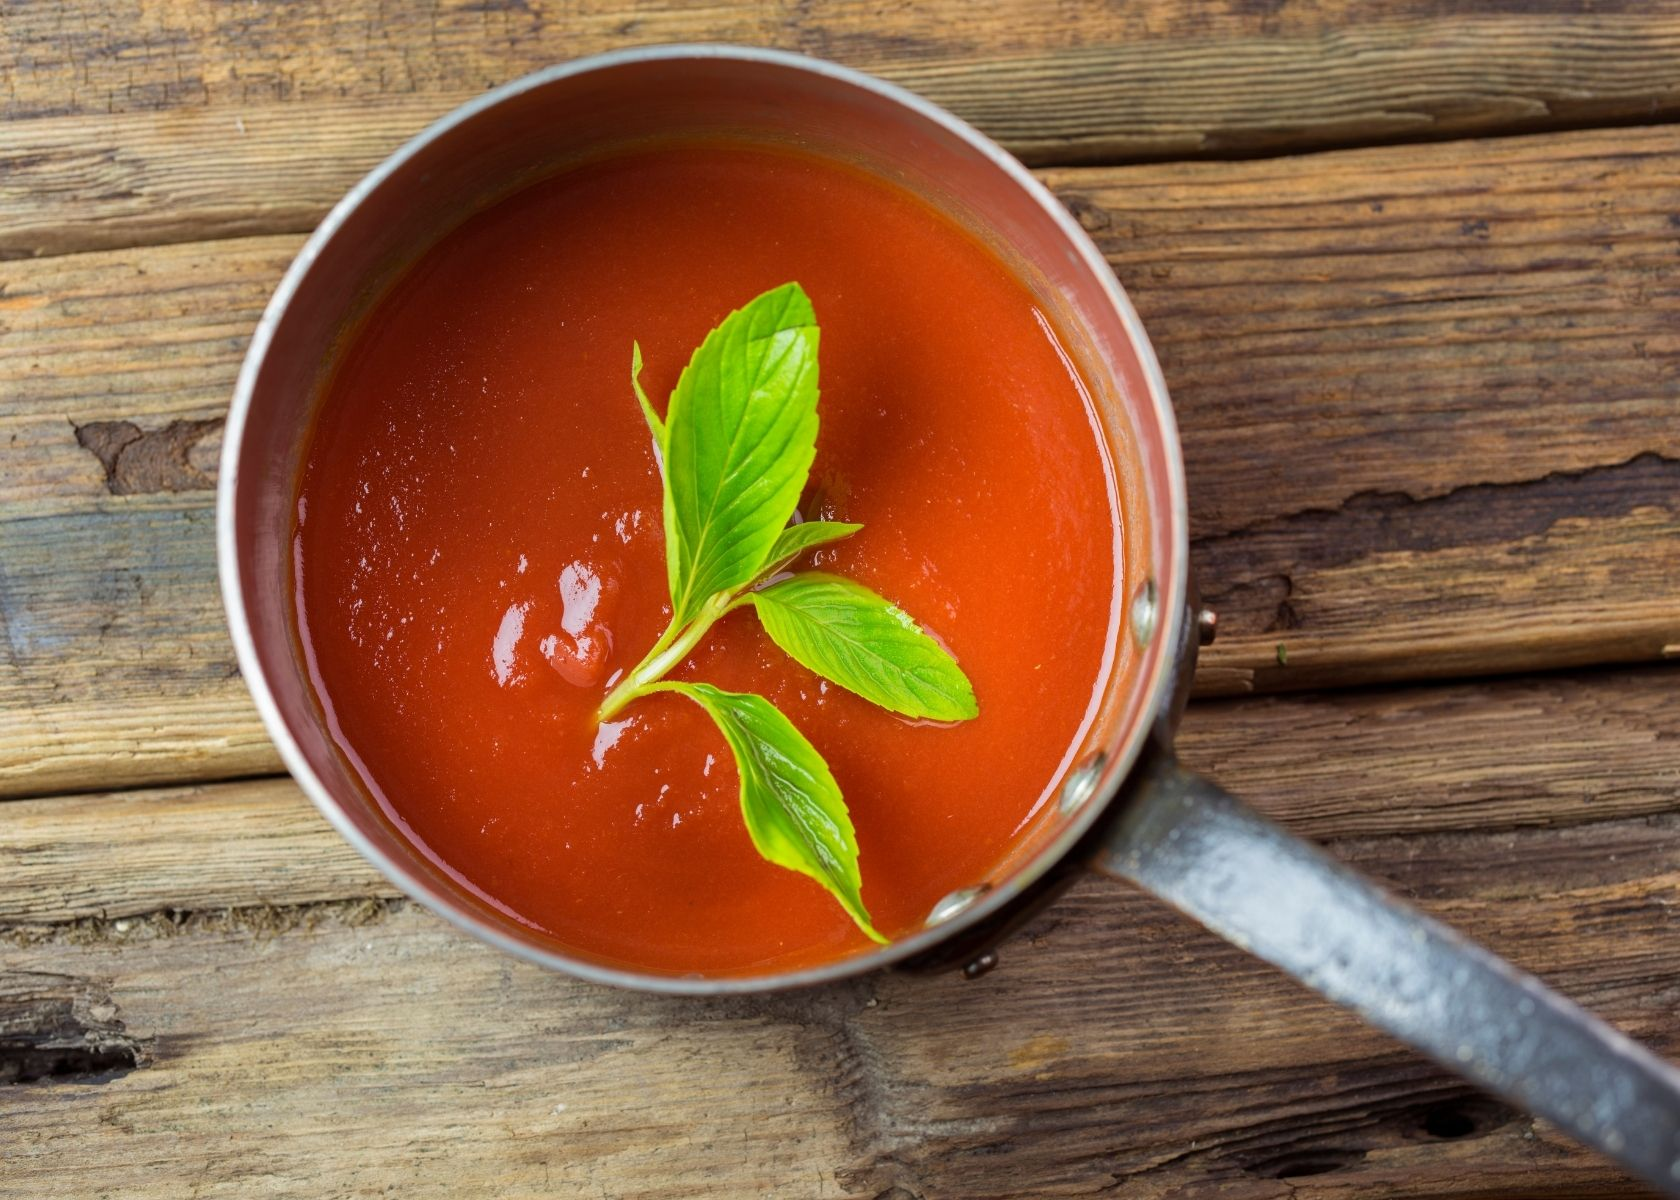 Tomato sauce in sauce pan with basil leaf stem on top sits on wood table.